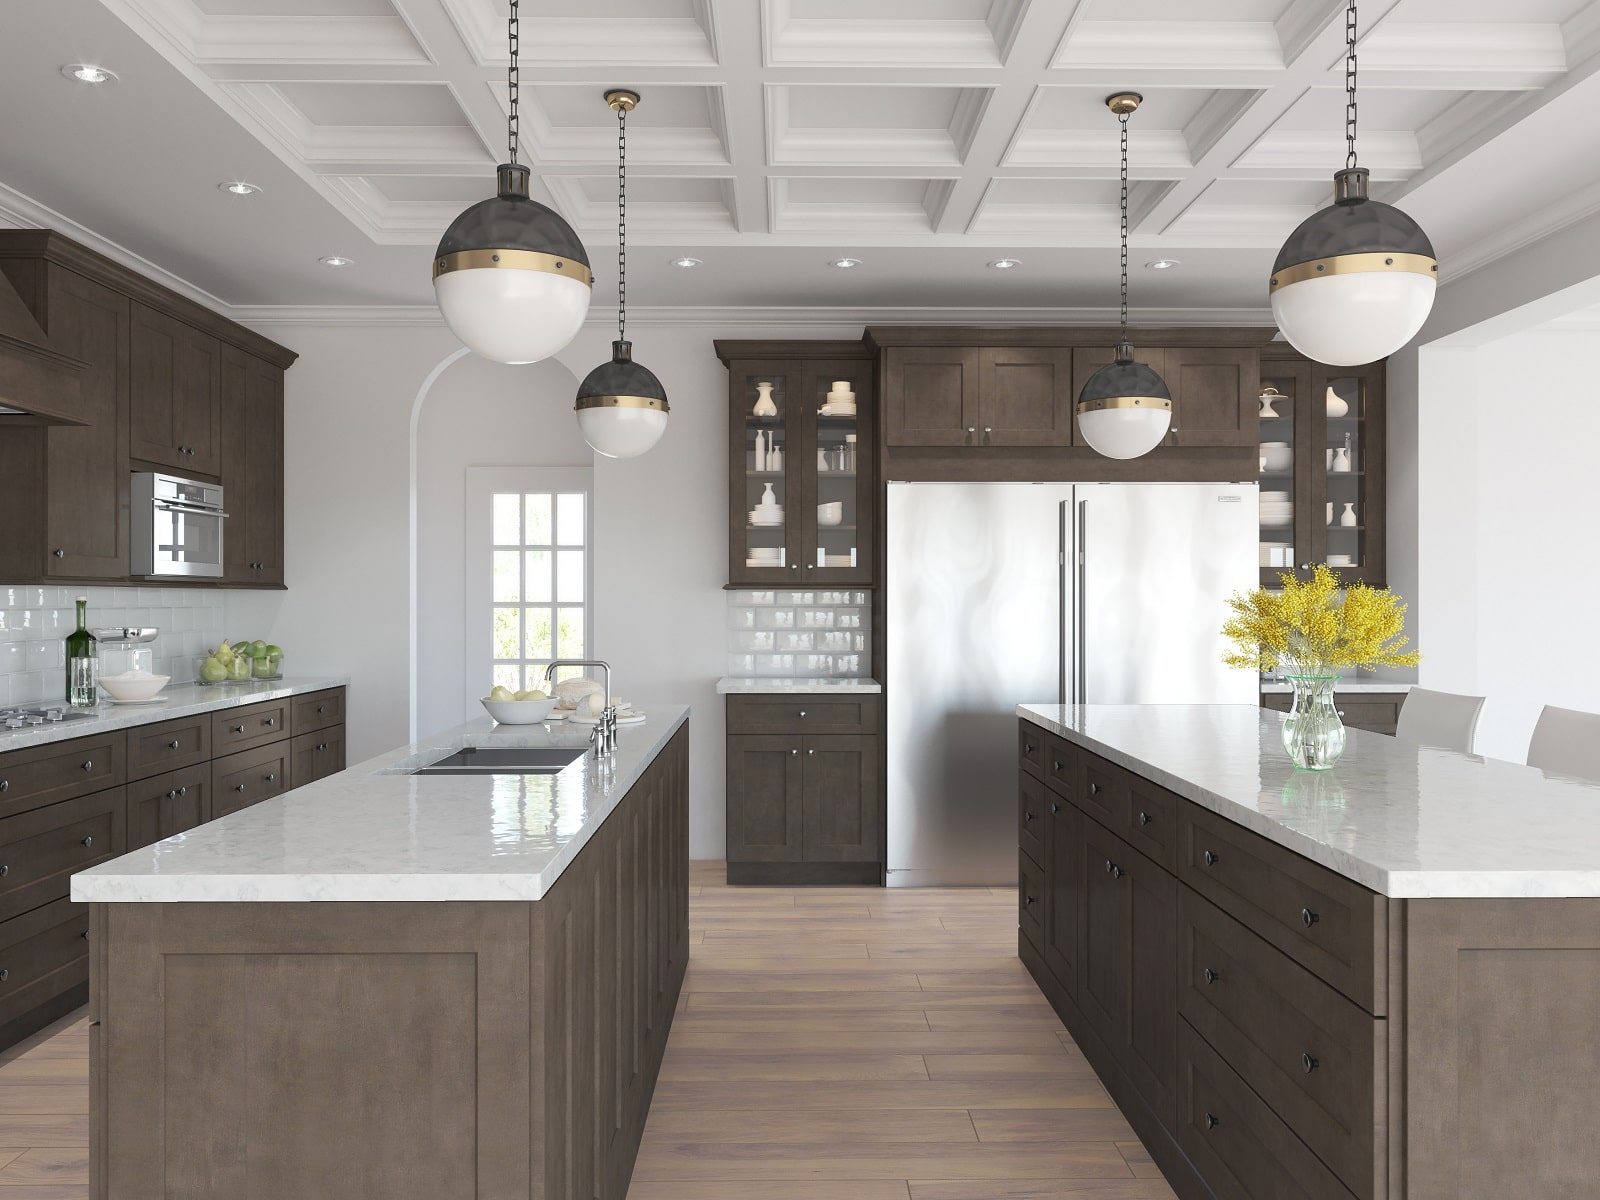 aspen grey birch kitchen cabinets instock | Natural Grey Shaker Pre-Assembled Kitchen Cabinets - The ...